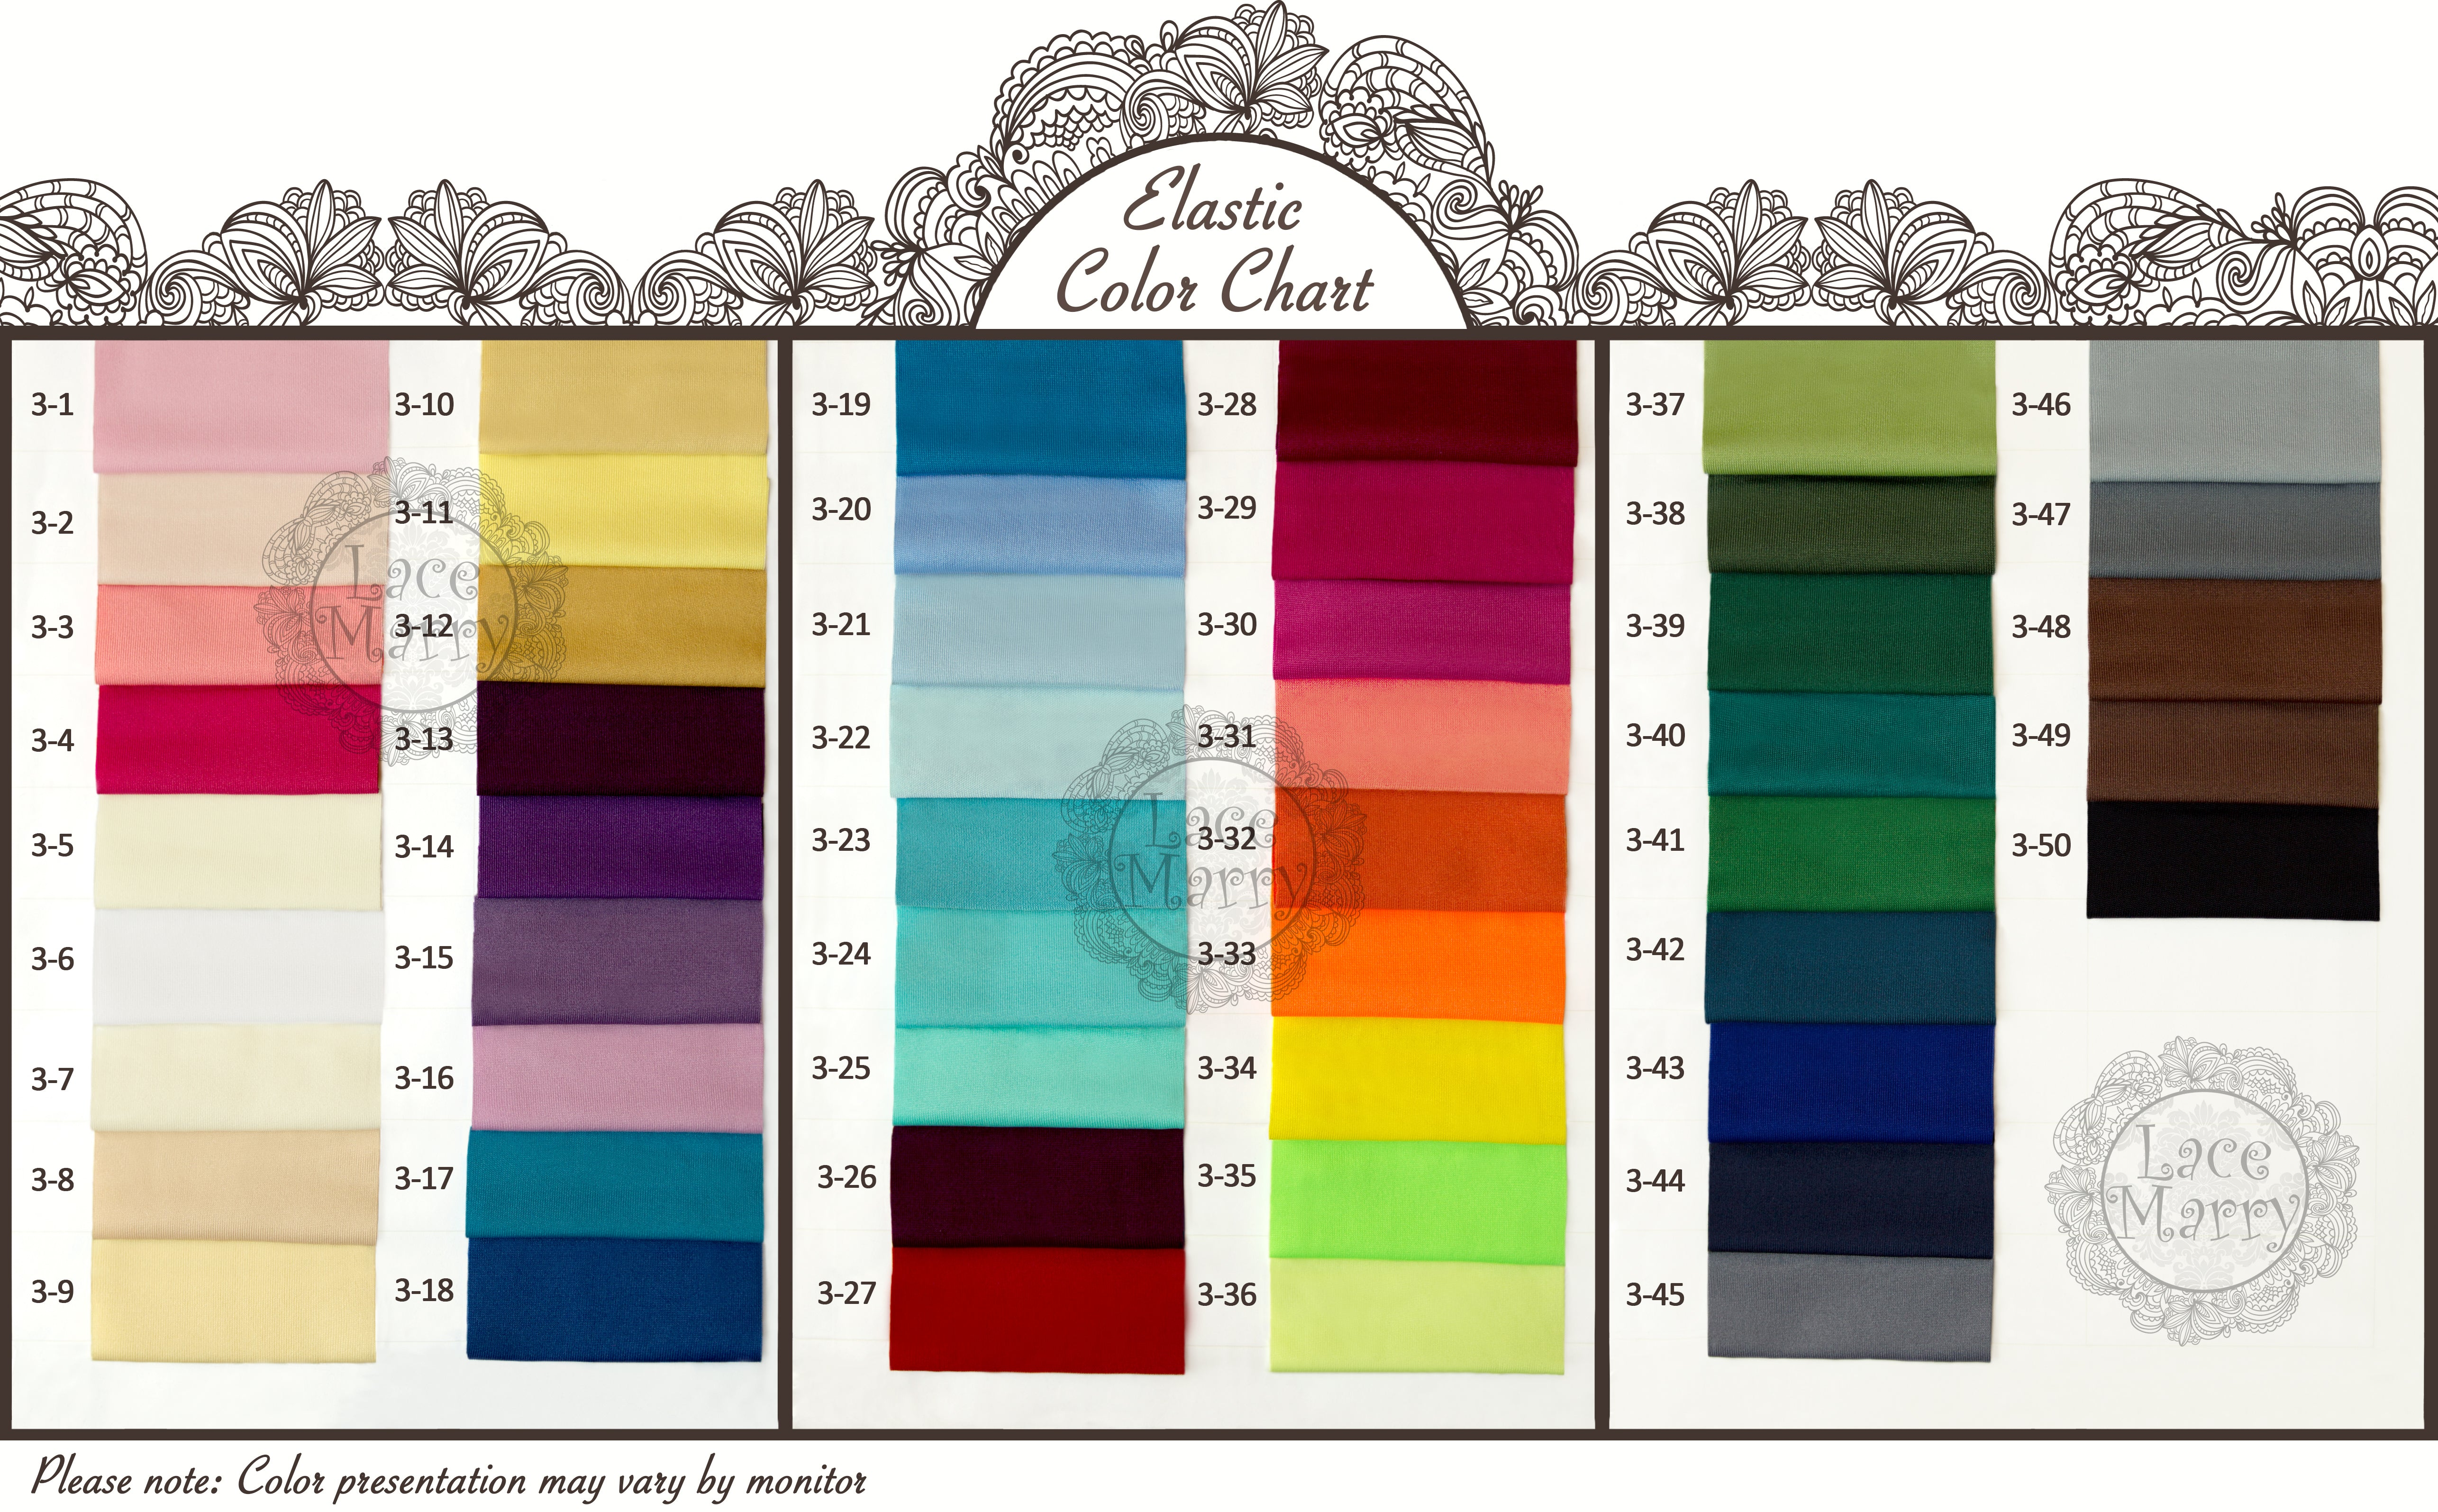 Lacemarry color charts of satin chiffon taffeta and strength elastic color chart nvjuhfo Images